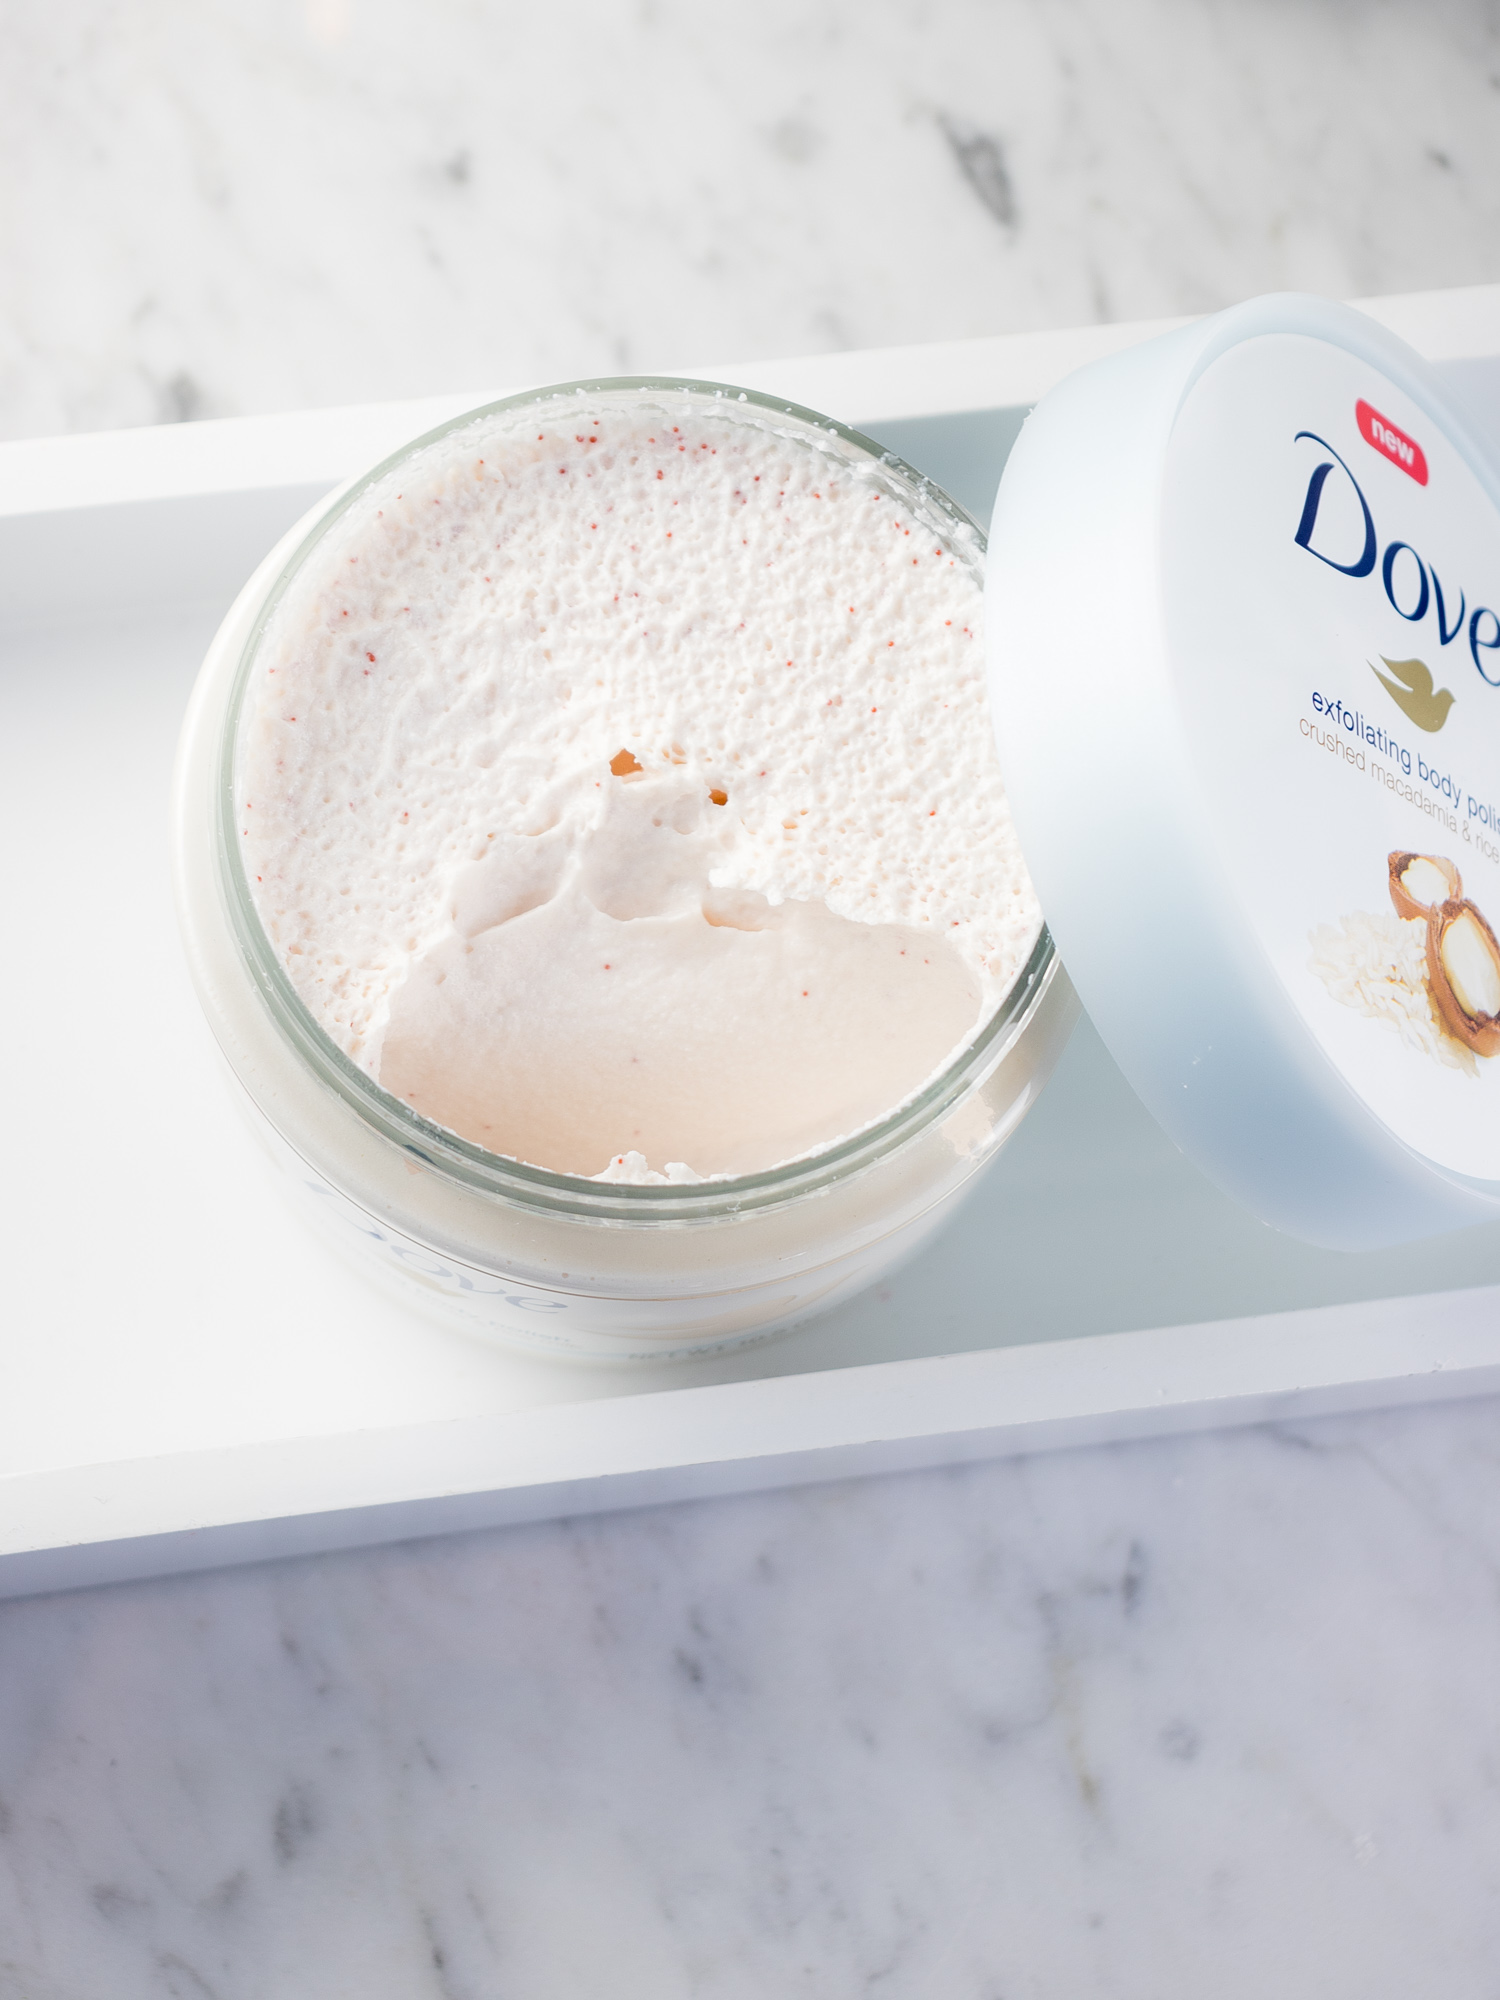 Dove Exfoliating Body Polish with Crushed Macadamia & Rice Milk